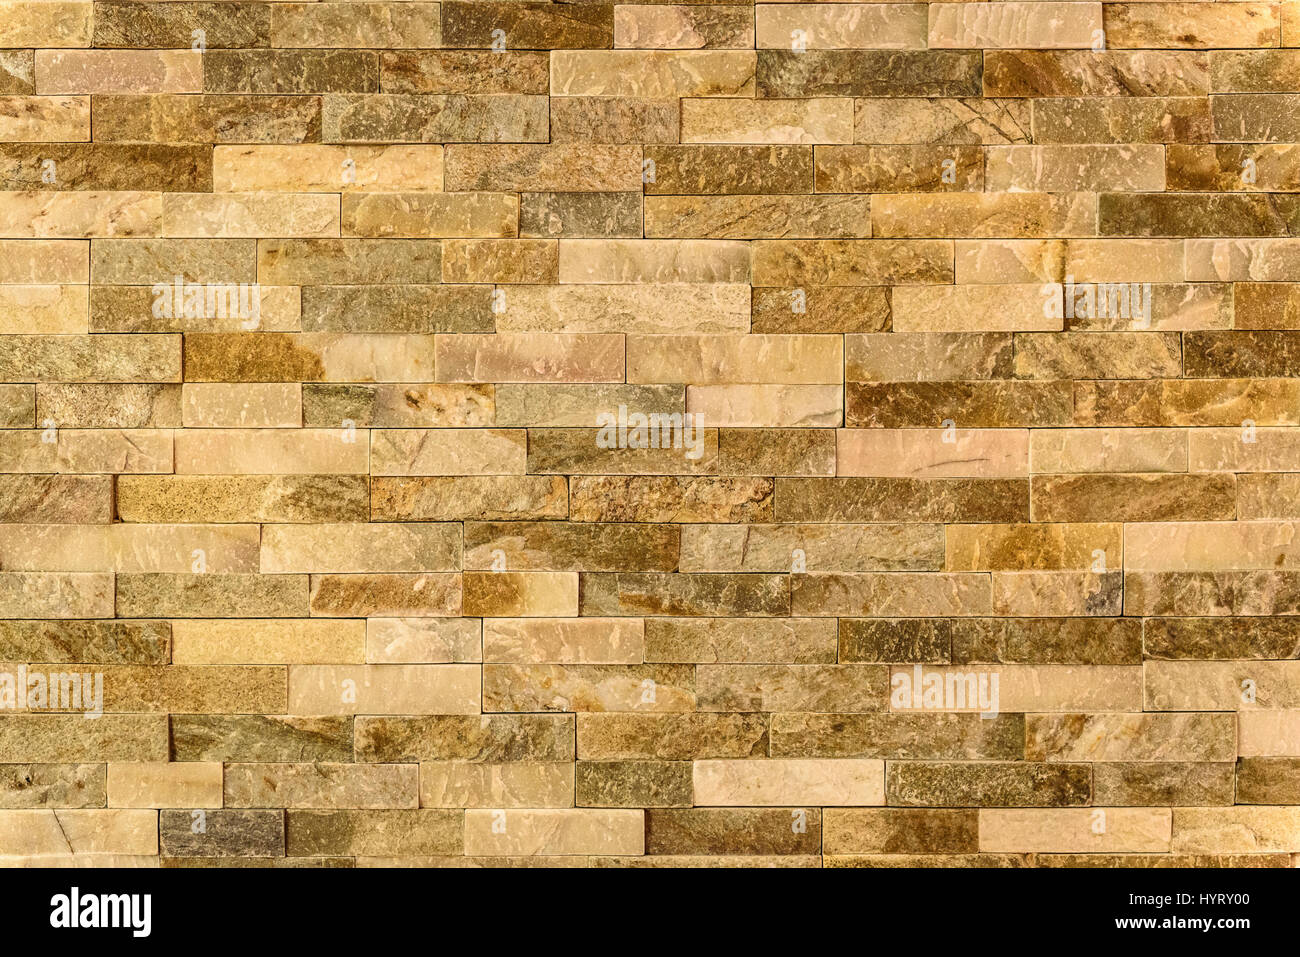 Unique Decorative Brick Wall Patterns Gallery